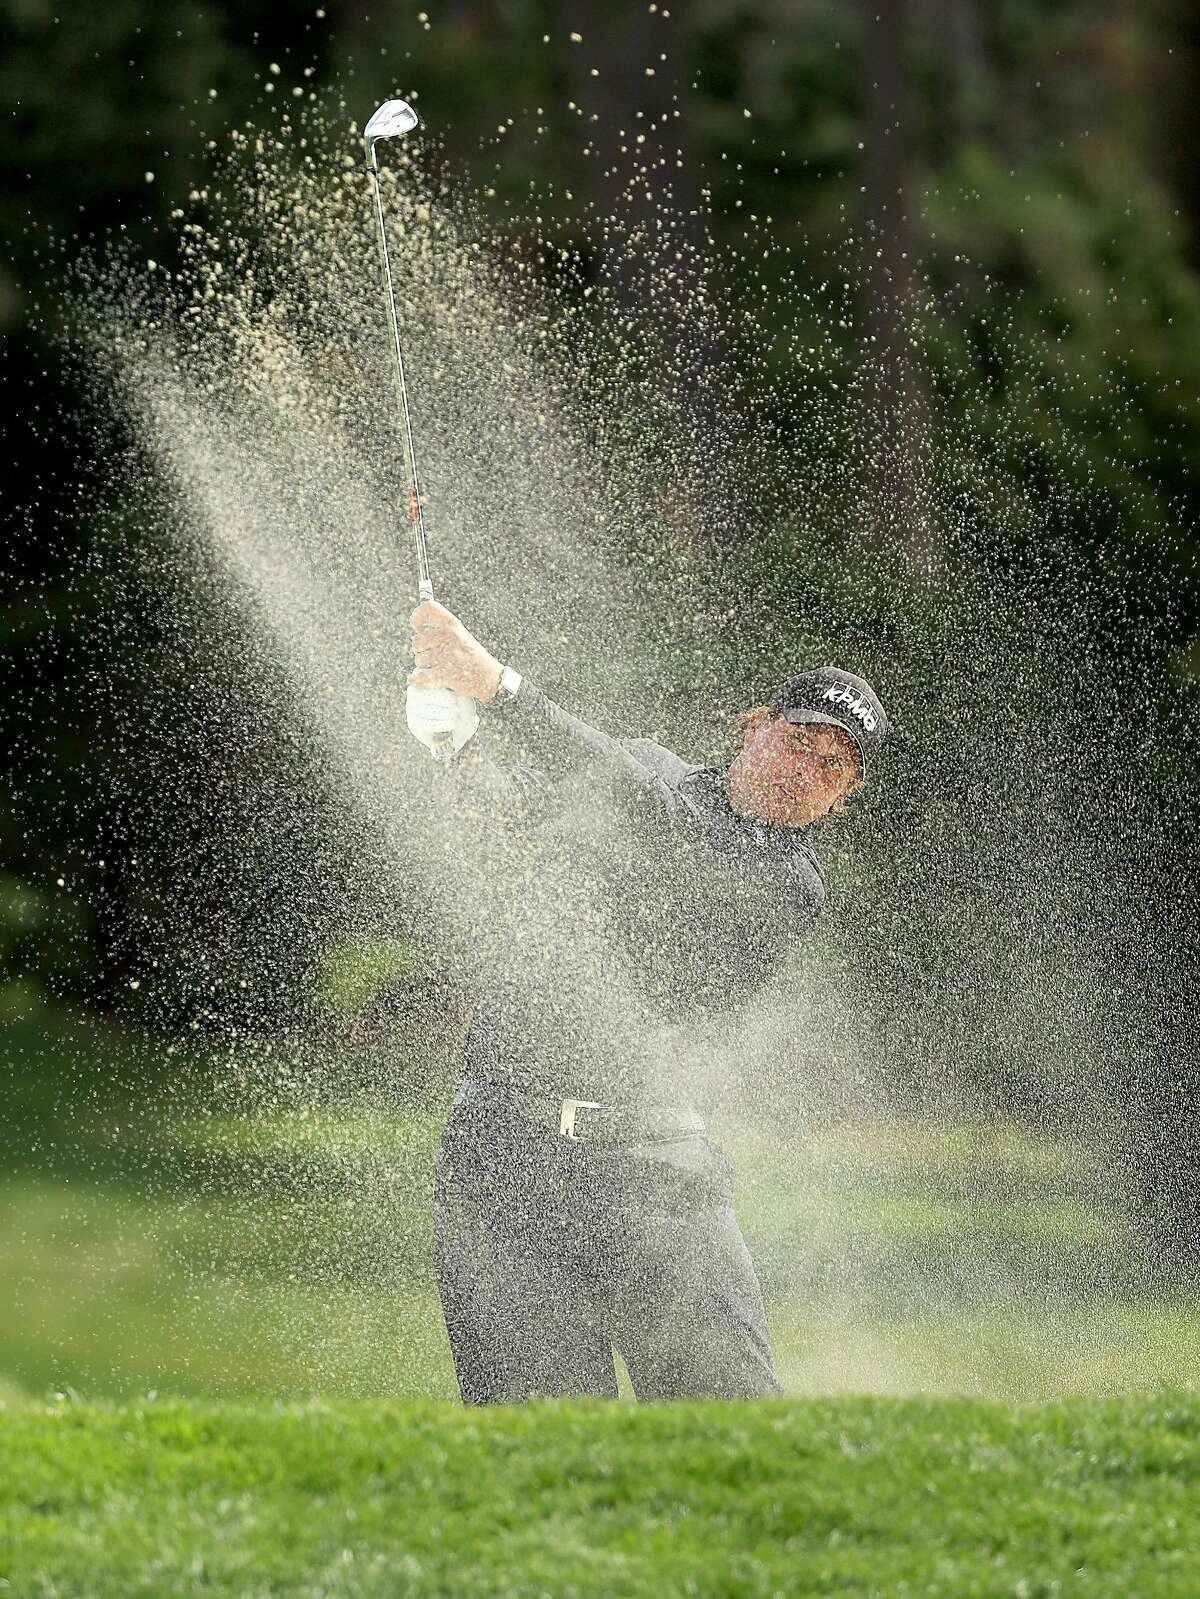 PEBBLE BEACH, CA - FEBRUARY 11: Phil Mickelson plays his shot from the bunker on the 13th hole during the Final Round of the AT&T Pebble Beach Pro-Am at Pebble Beach Golf Links on February 11, 2018 in Pebble Beach, California. ~~